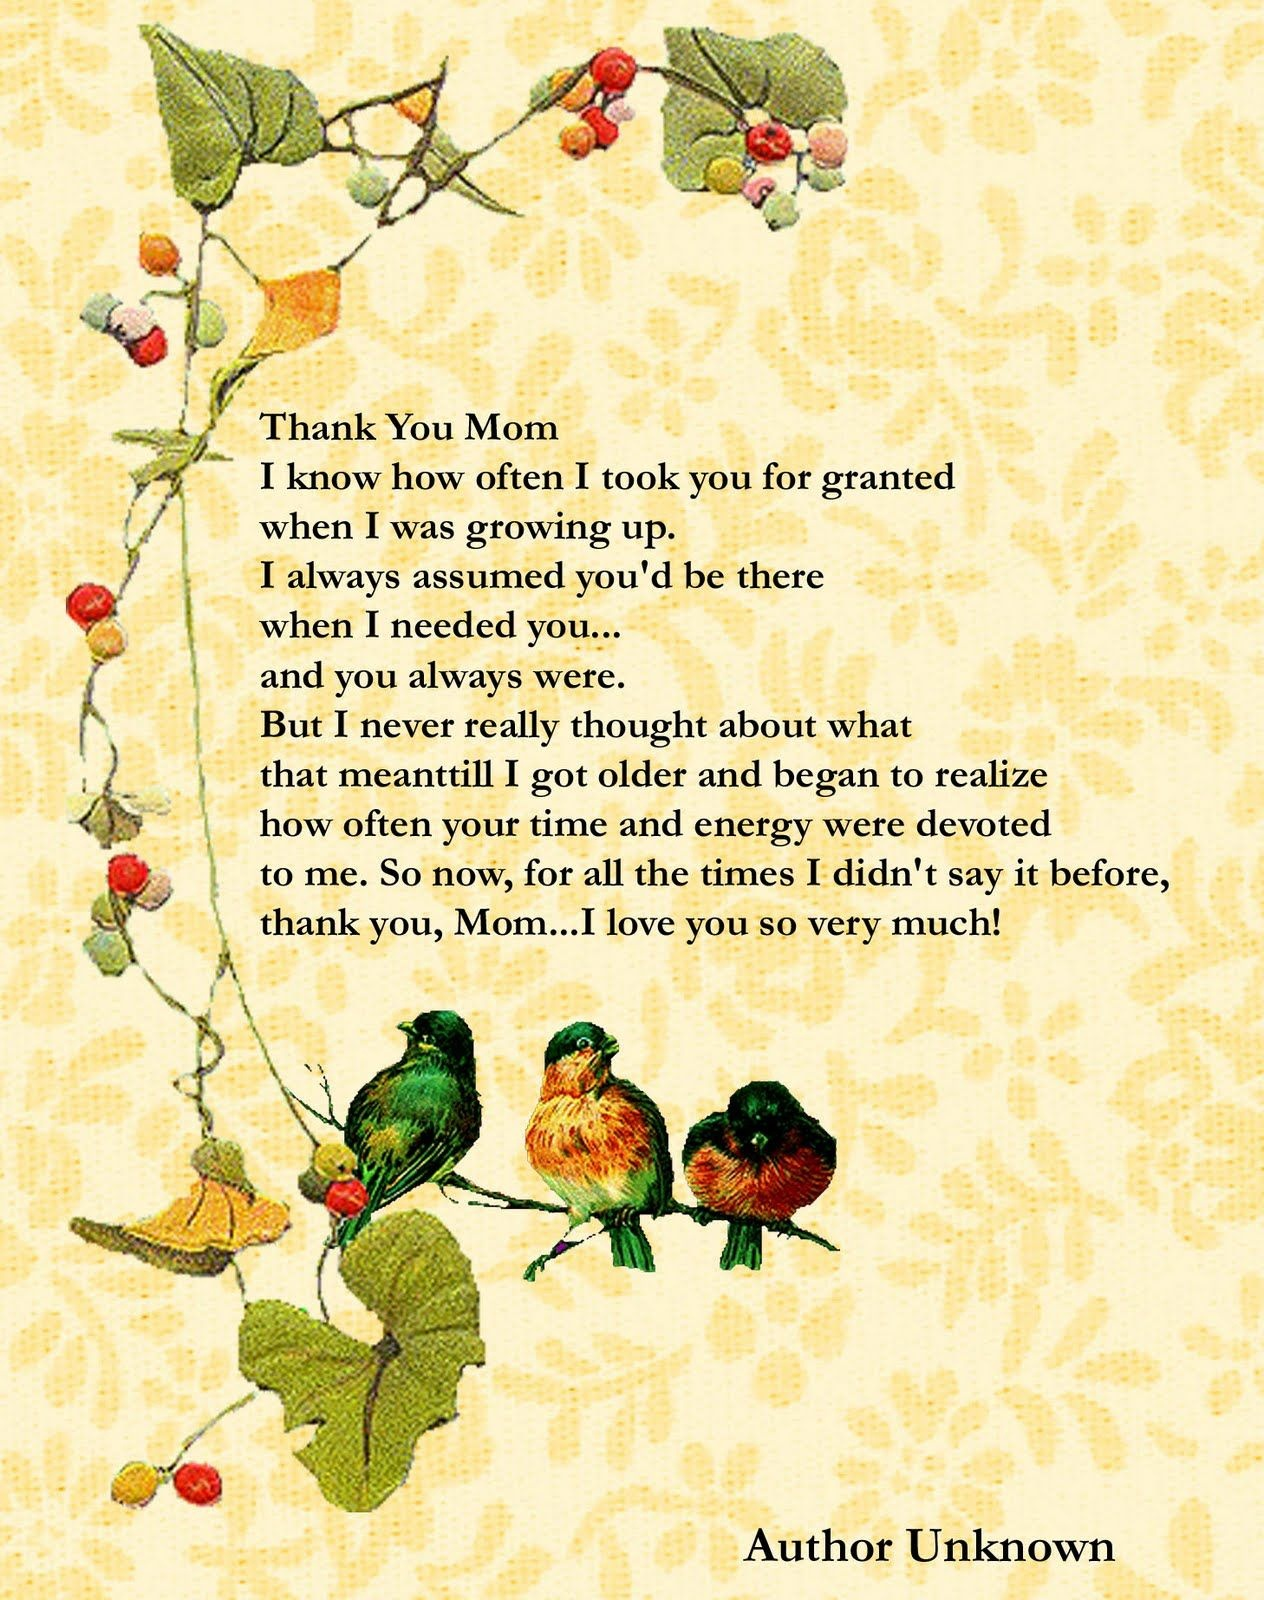 Printable Mother's Day Poems | Free Mothers Day Digital Card - Free Printable Mothers Day Poems